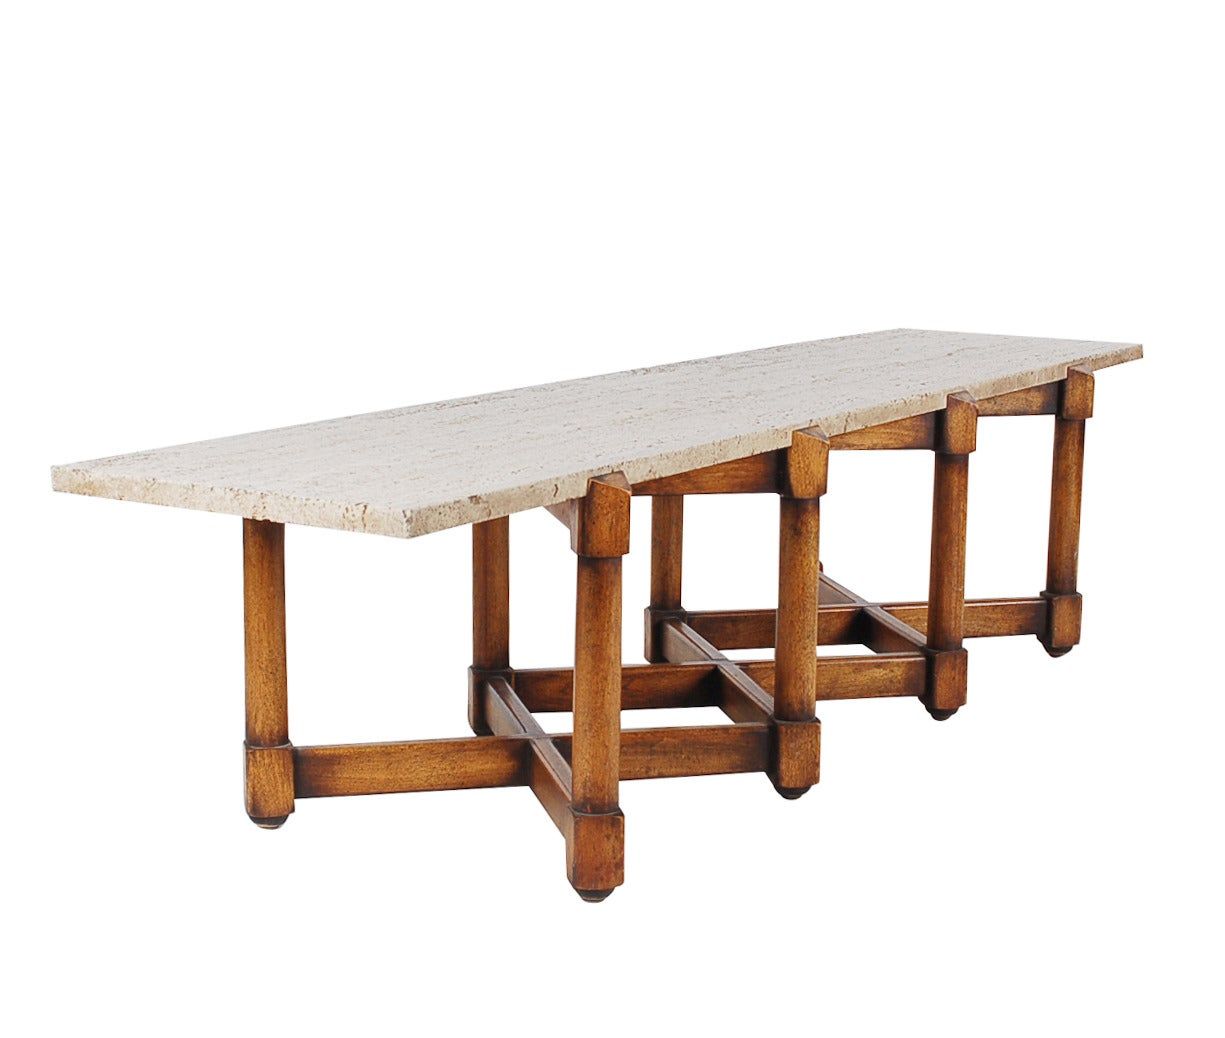 Terrazzo Marble And Walnut Coffee Table Attributed To Harvey Probber At 1stdibs